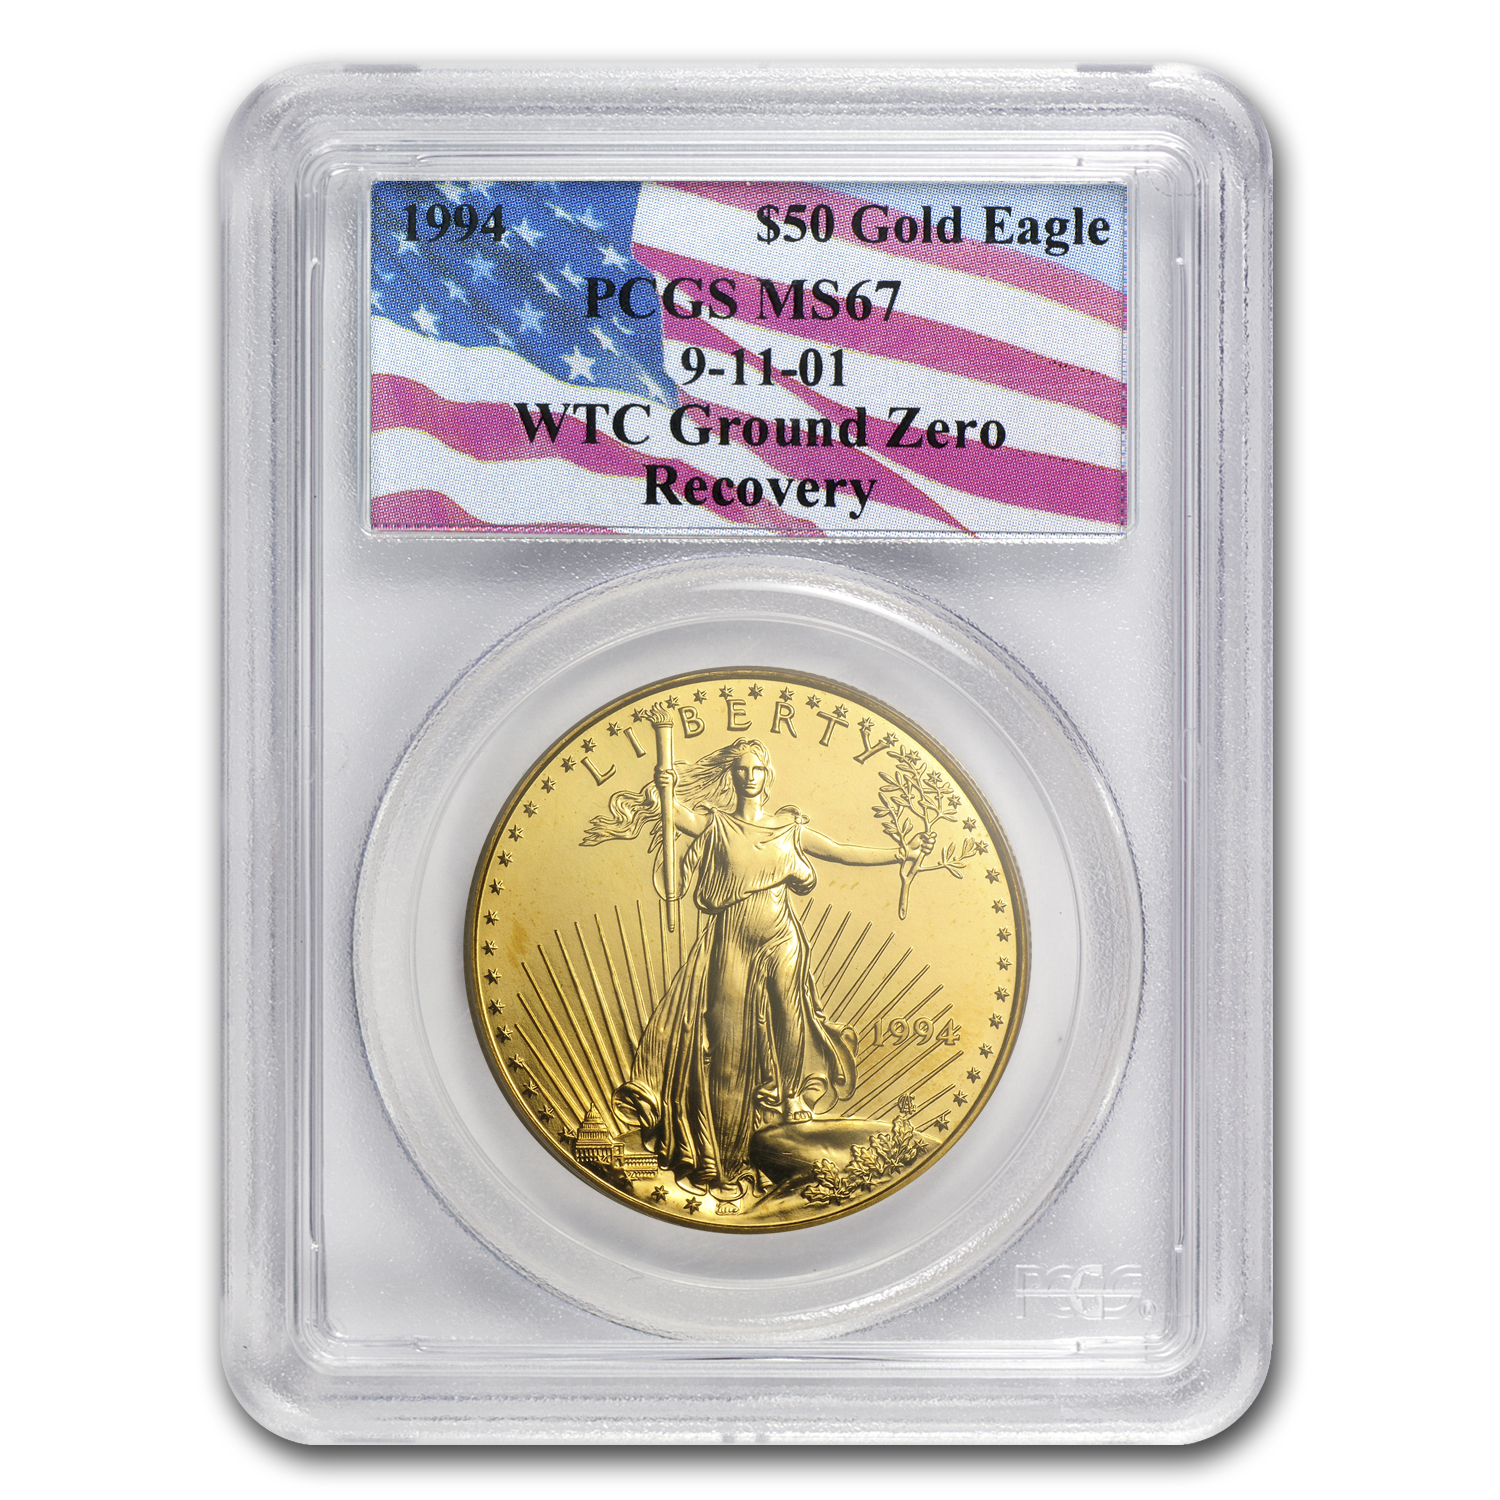 1994 1 oz Gold American Eagle MS-67 PCGS (World Trade Center)